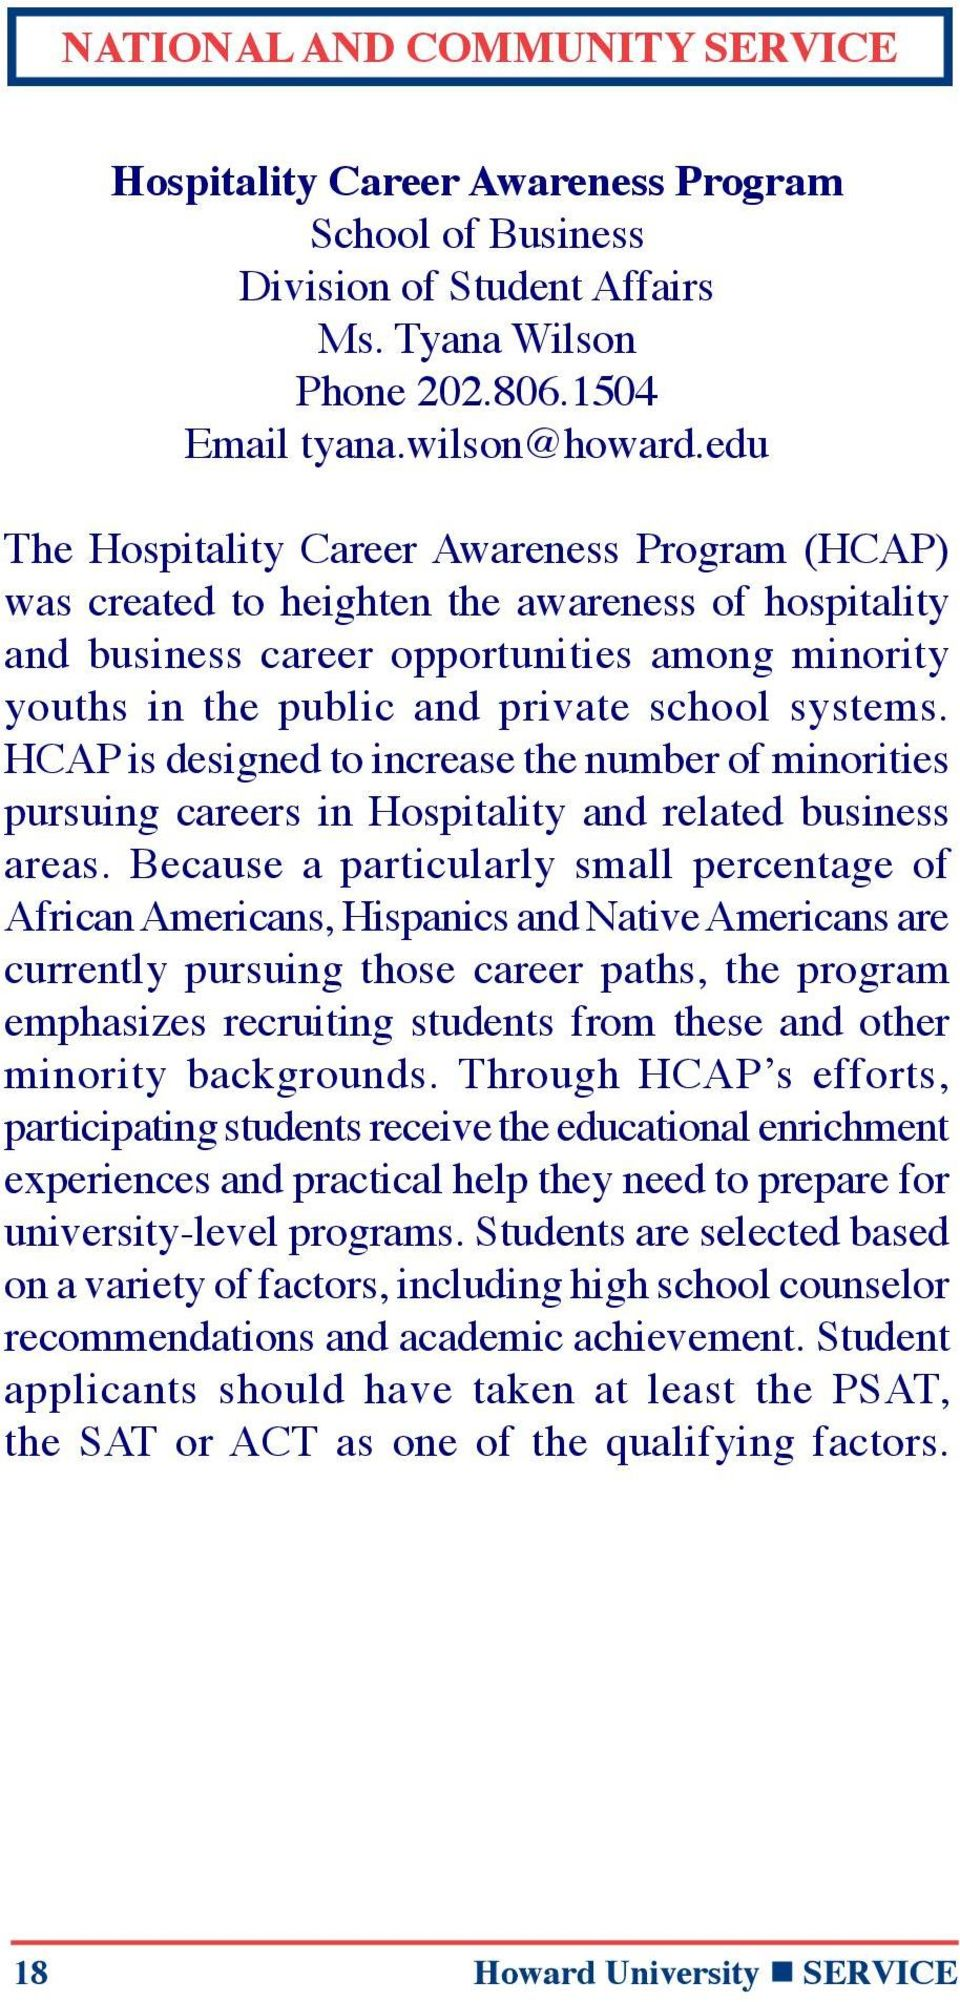 systems. HCAP is designed to increase the number of minorities pursuing careers in Hospitality and related business areas.